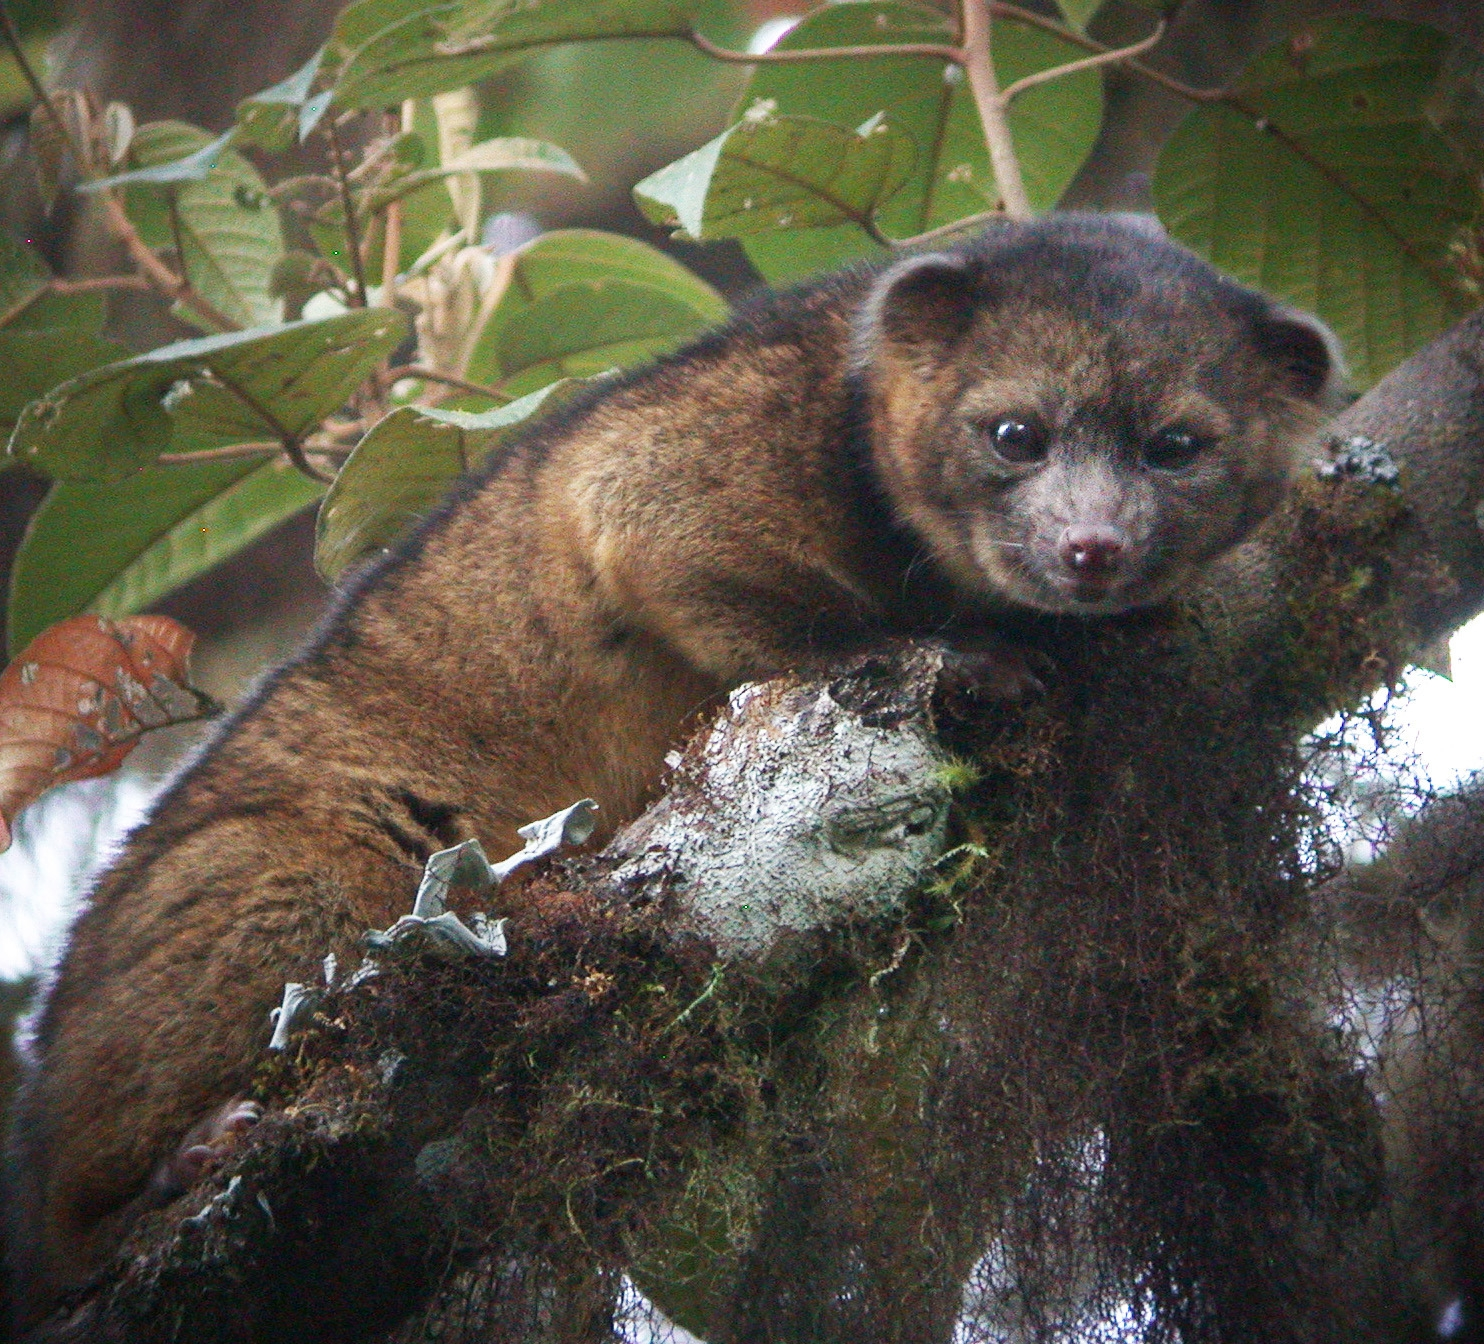 The olinguito managed to elude discovery until recently.